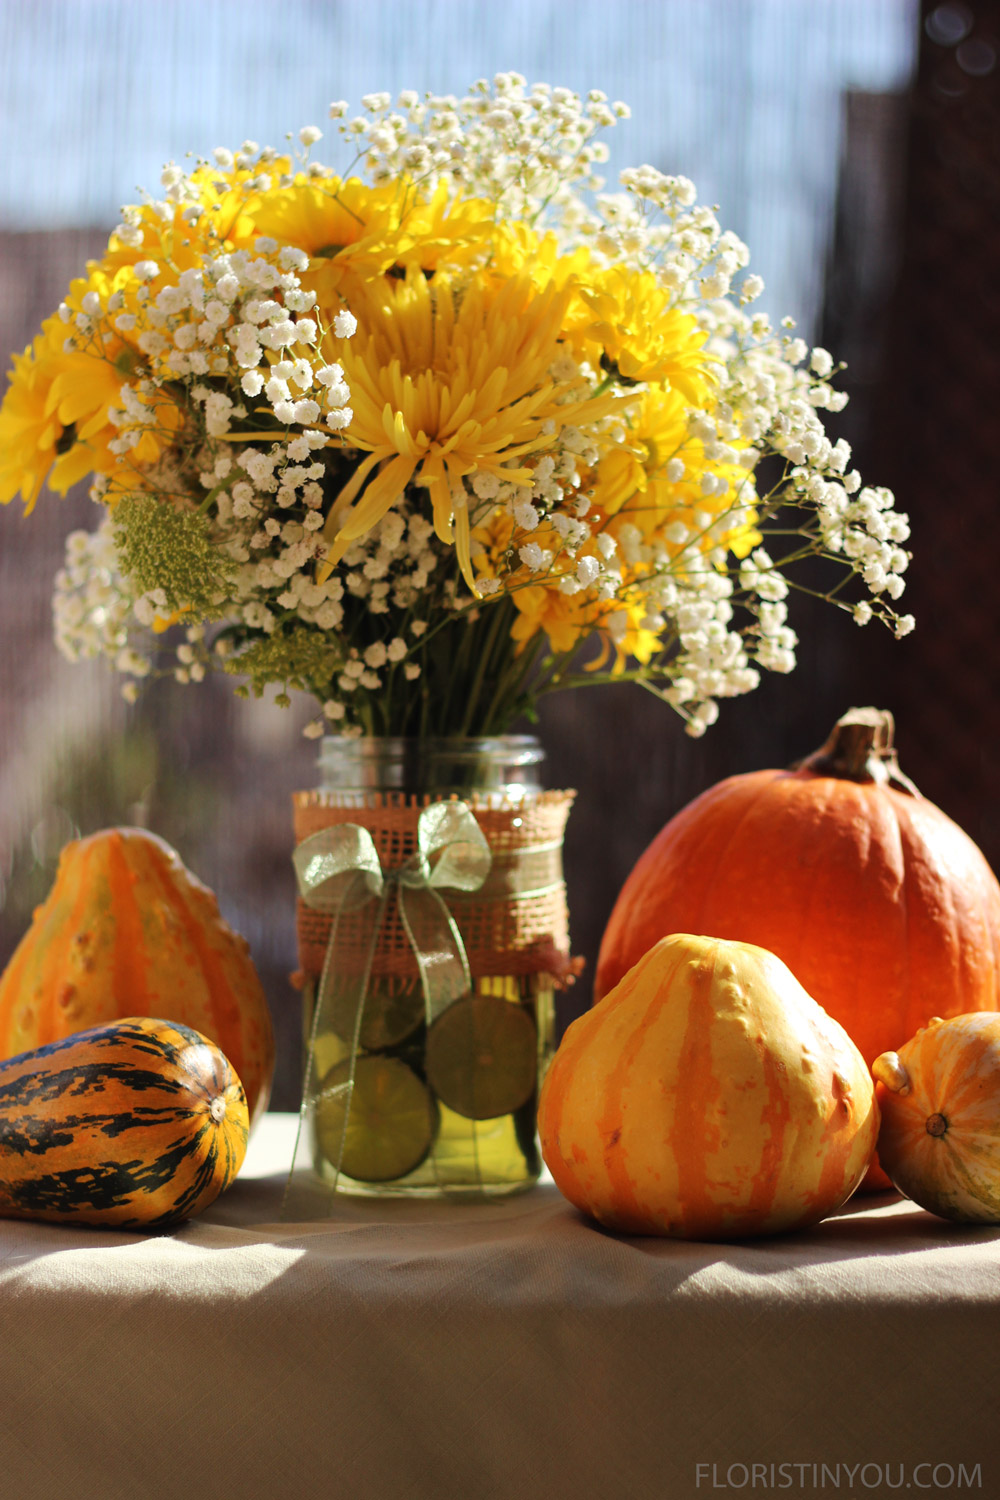 Add some decorative gourds and a pie pumpkin and it looks like Fall.